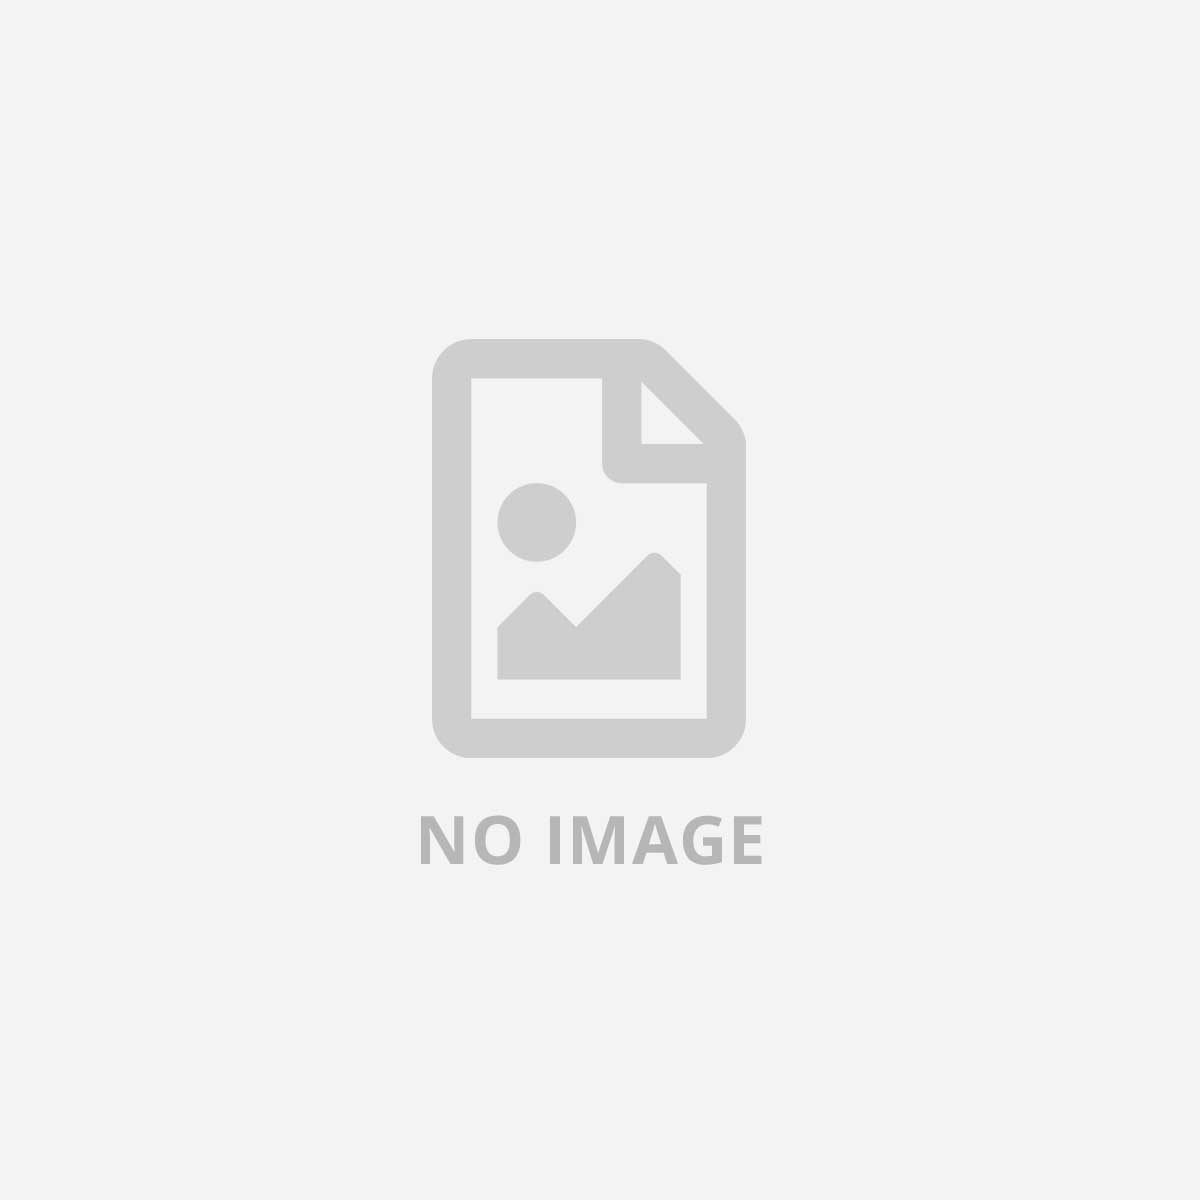 NILOX CAVO STEREO 2 RCA/ JACK 3.5 MT. 1.5